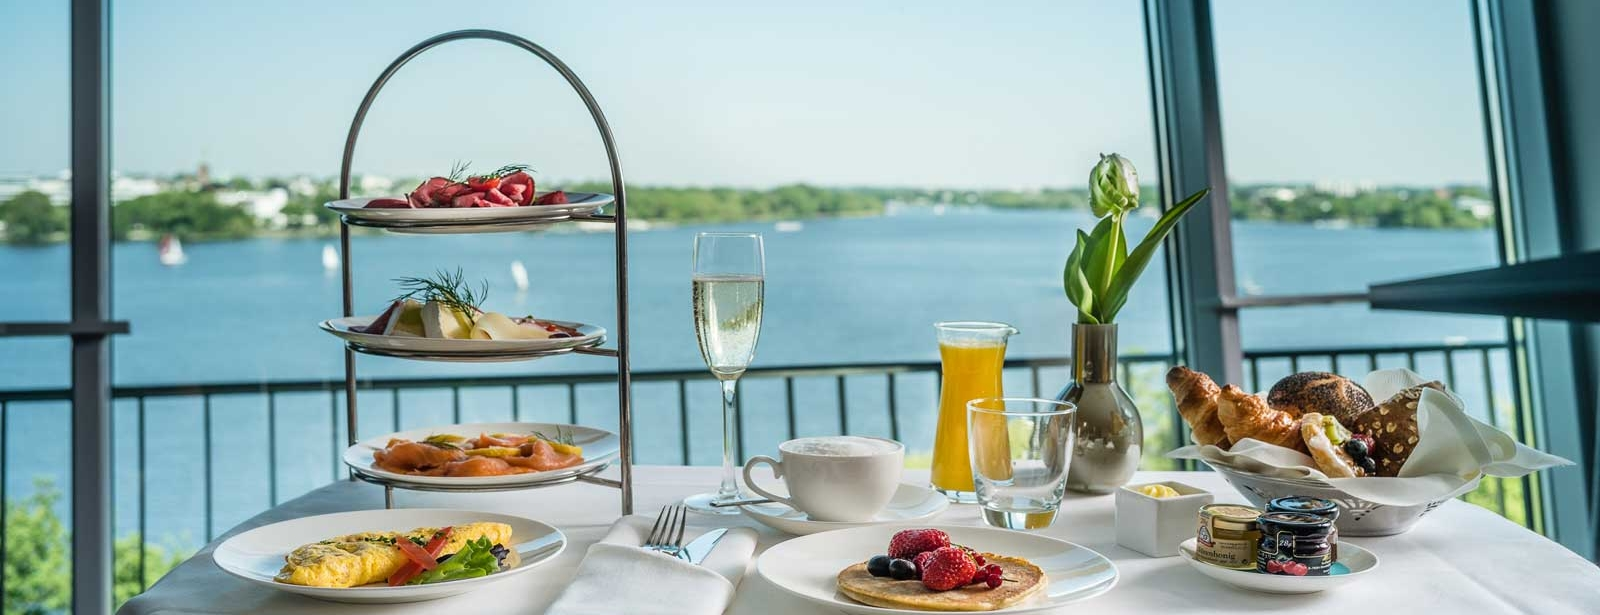 Executive Room - Le Méridien Hamburg - Breakfast with Alster view